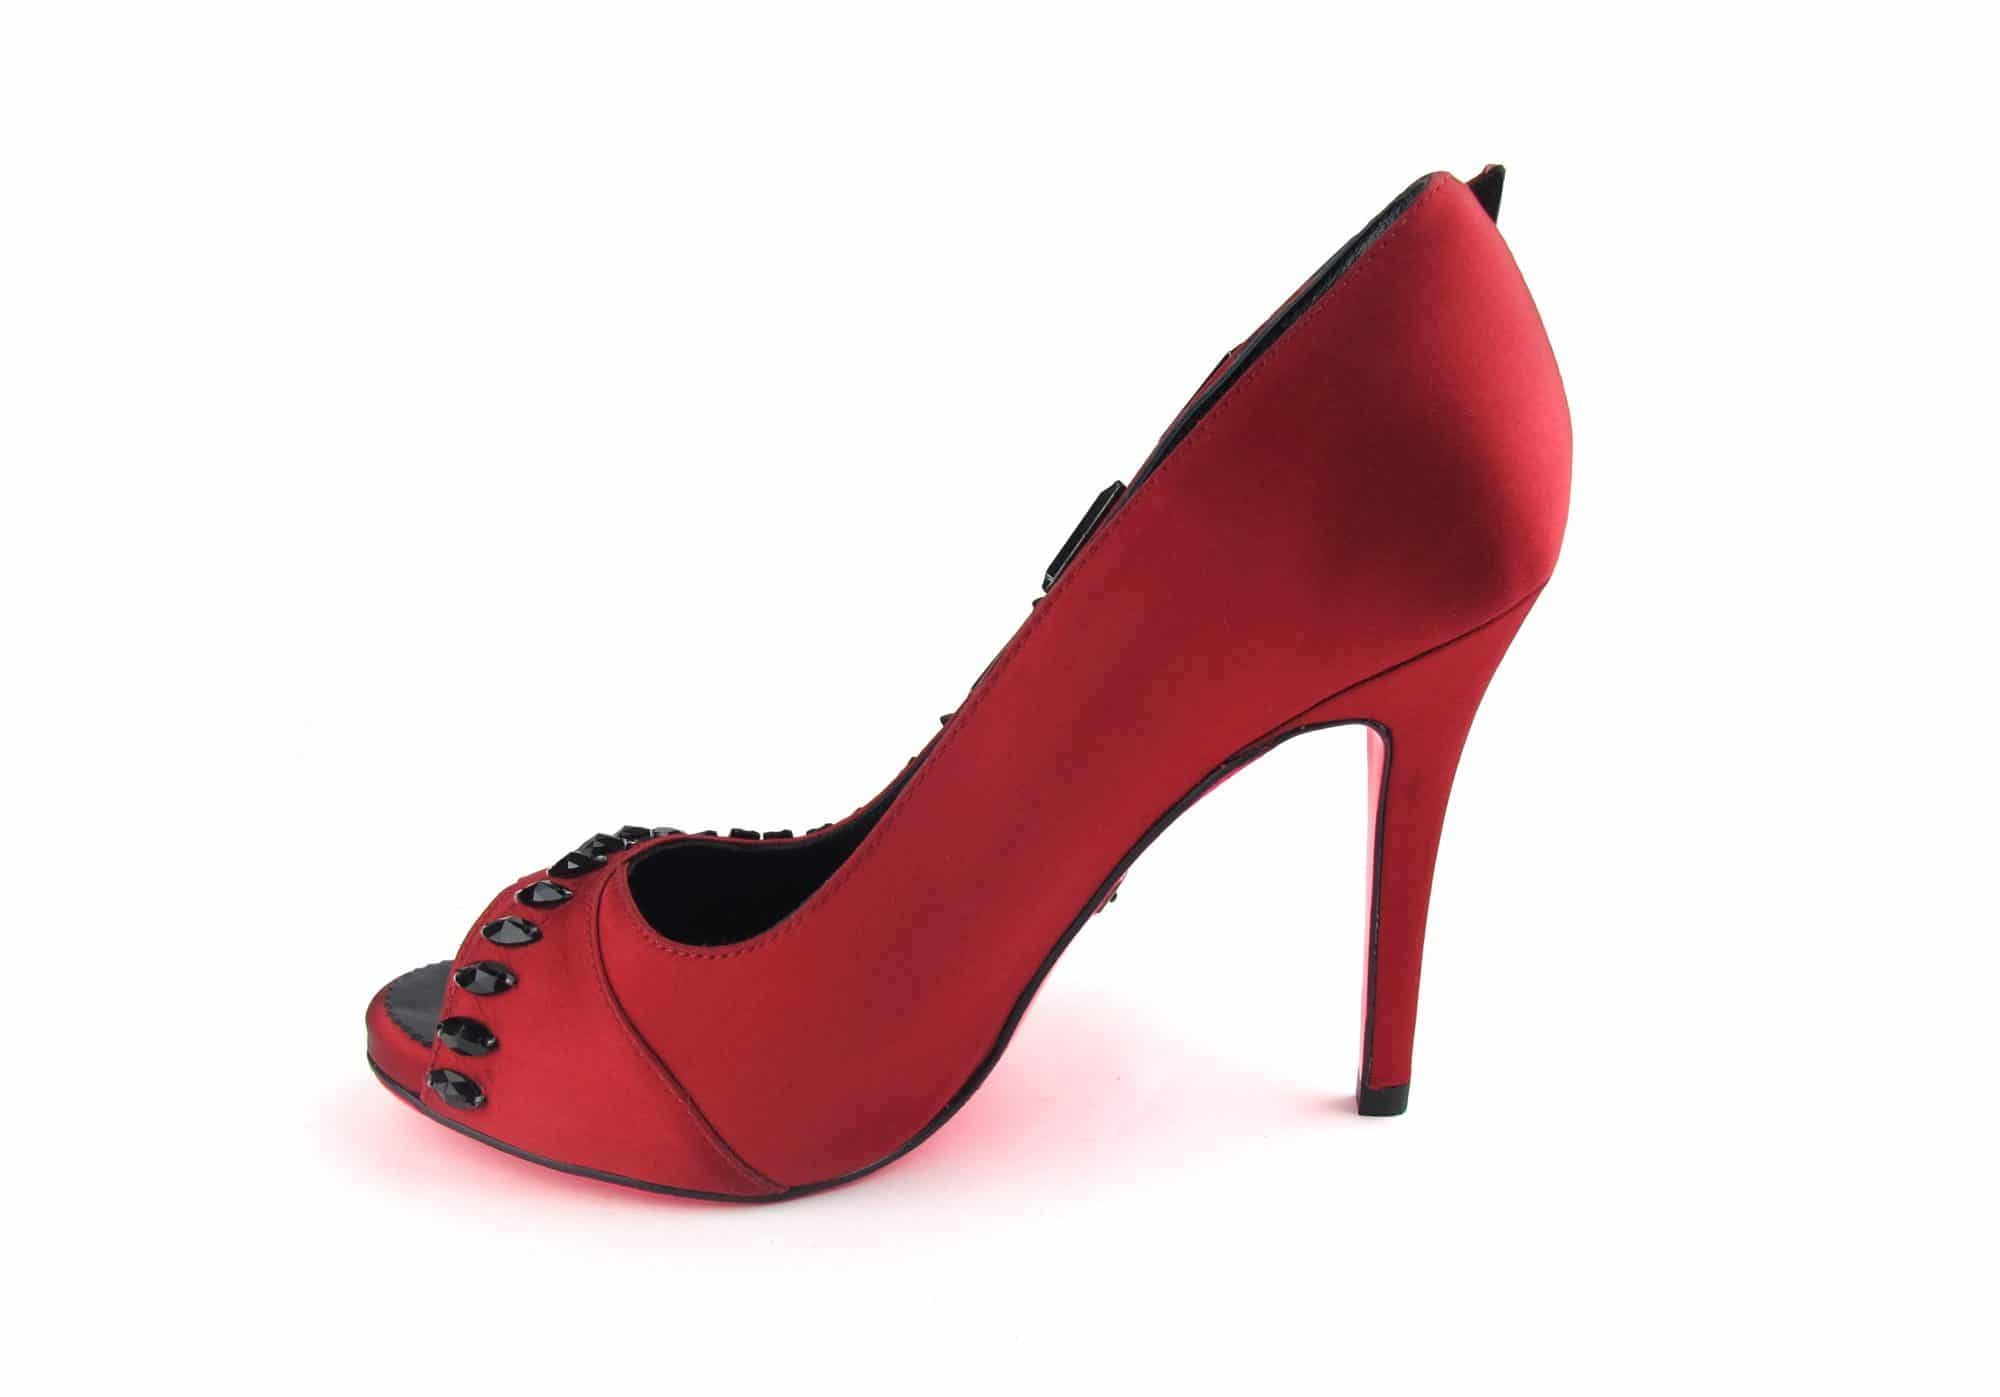 Suecomma Bonnie Red peep toe heels with black crystals